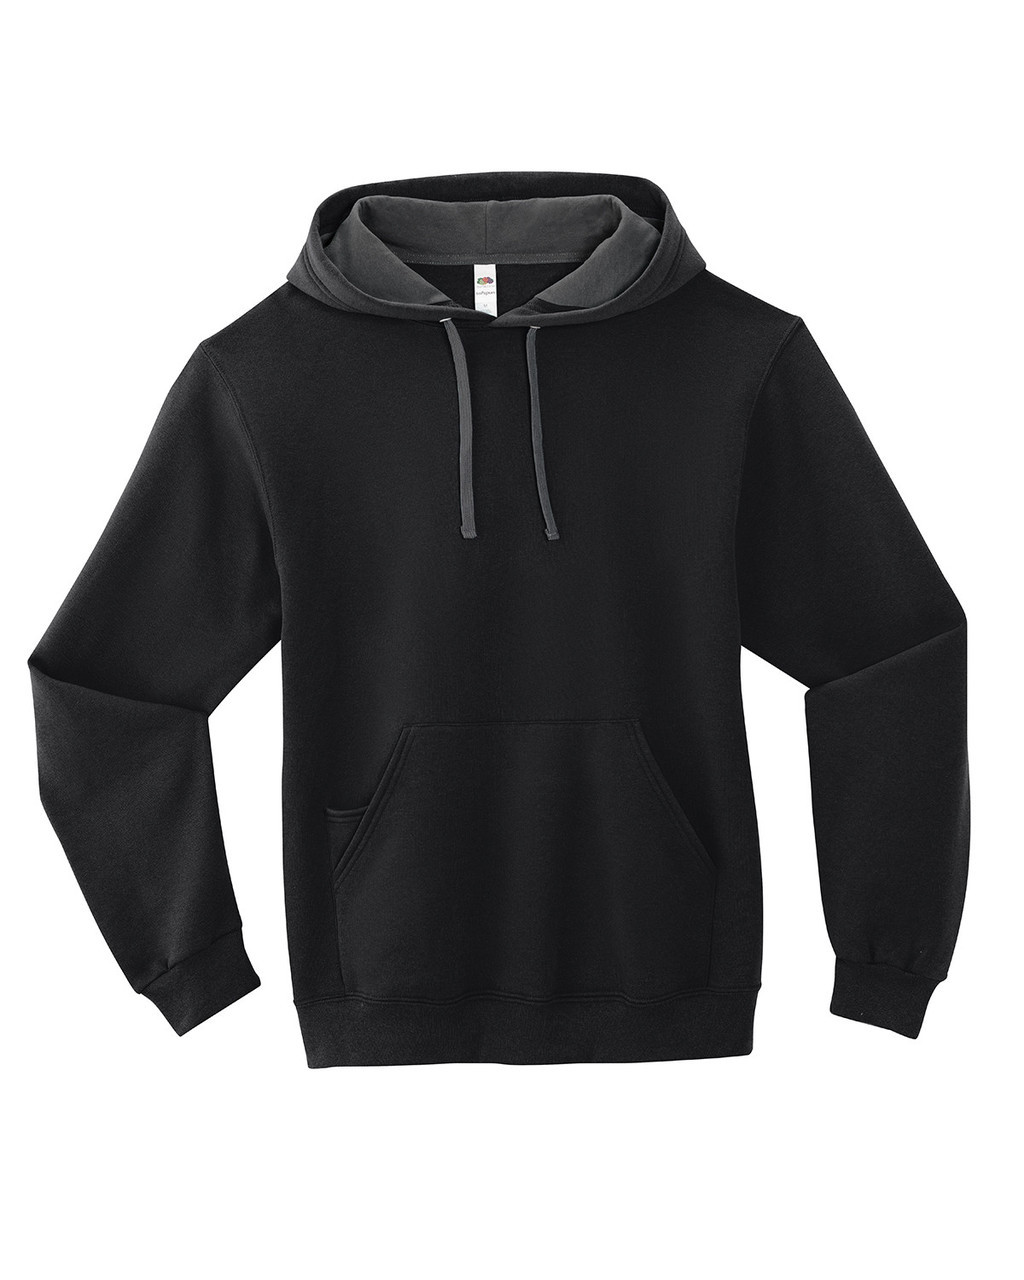 Black - SF76R Fruit of the Loom Softspun Hooded Sweatshirt | Blankclothing.ca